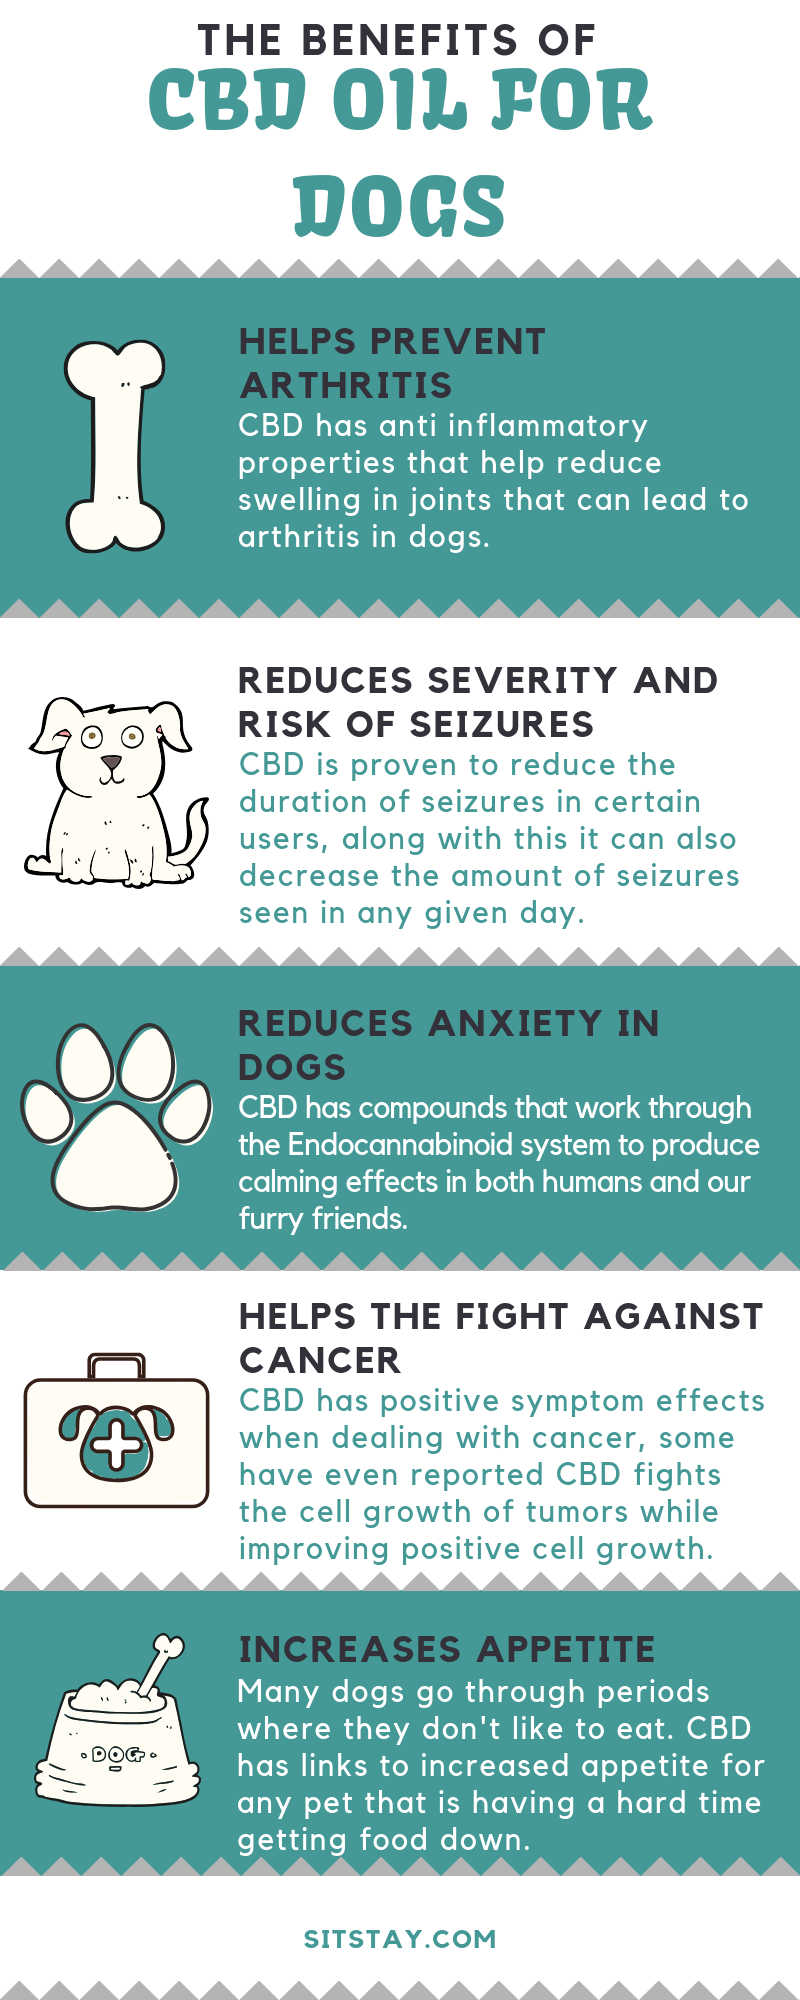 Bennefits of CBD for dogs info graphic